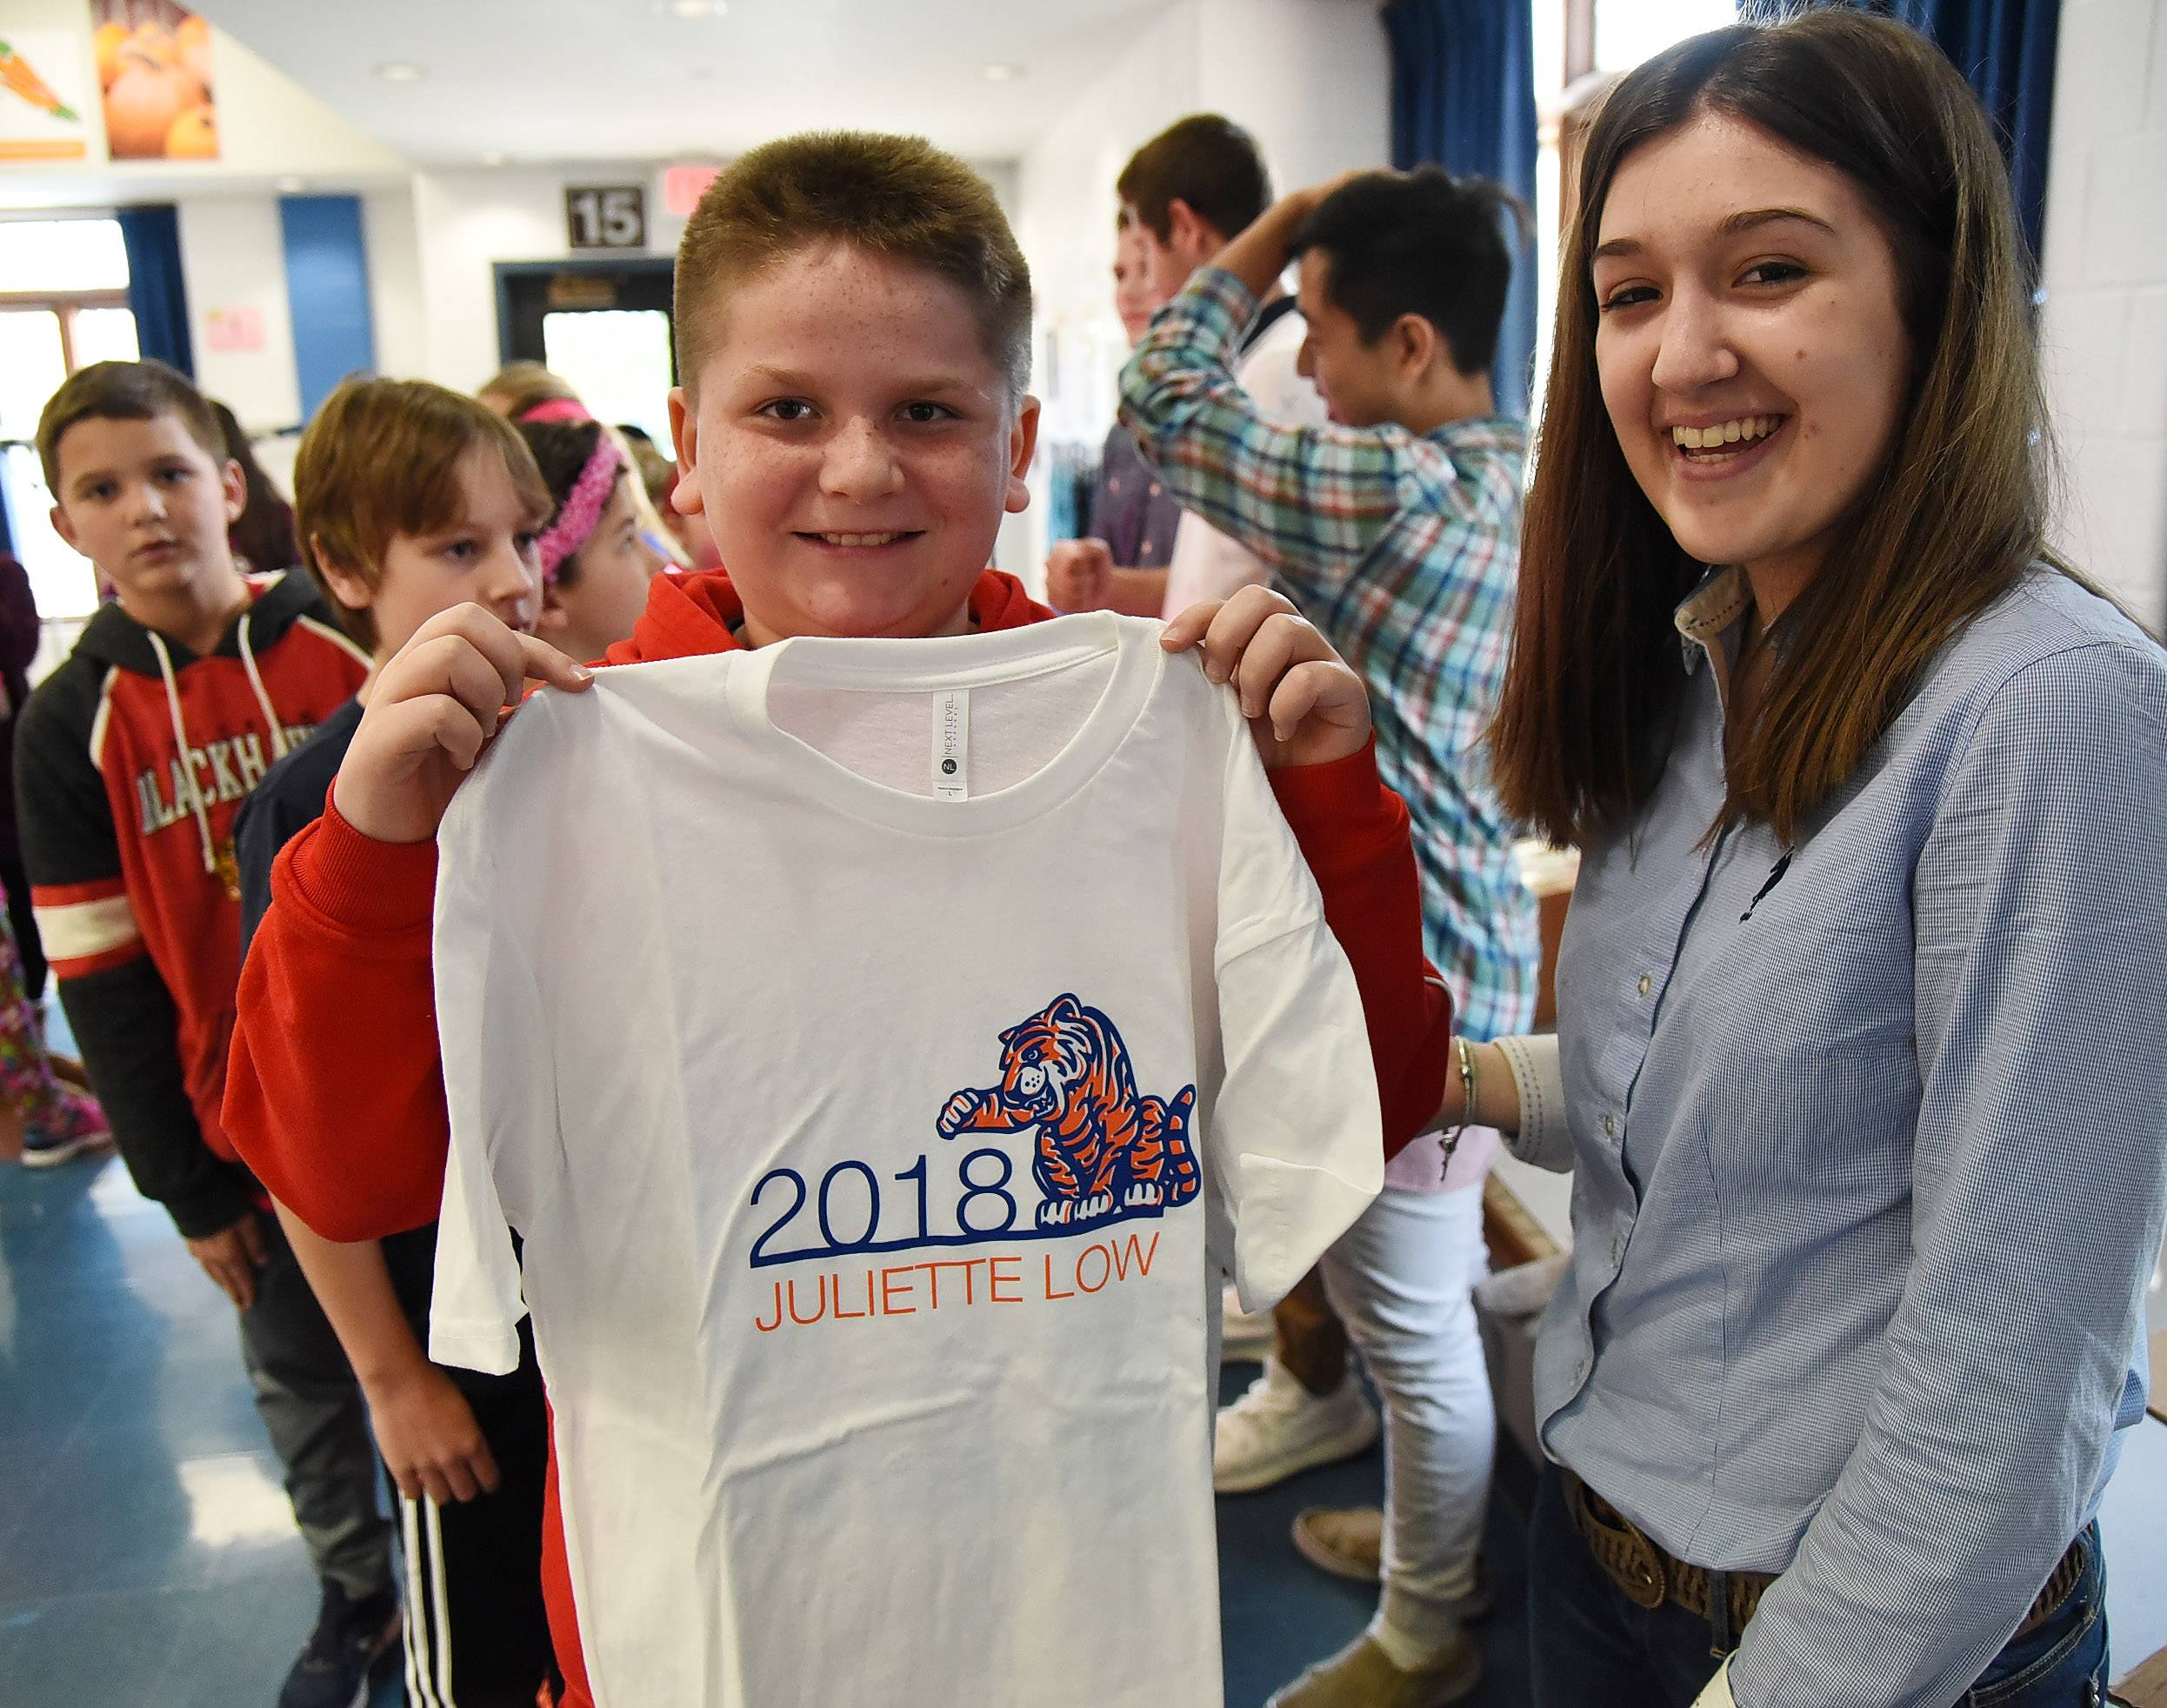 Alexander Villagrana holds up the T-shirt he just received from Rolling Meadows High School graphic design student Noel Manushi. Rolling Meadows students delivered T-shirts designed for the graduating fifth-graders at Juliette Low School as part of their graphic design startup company.